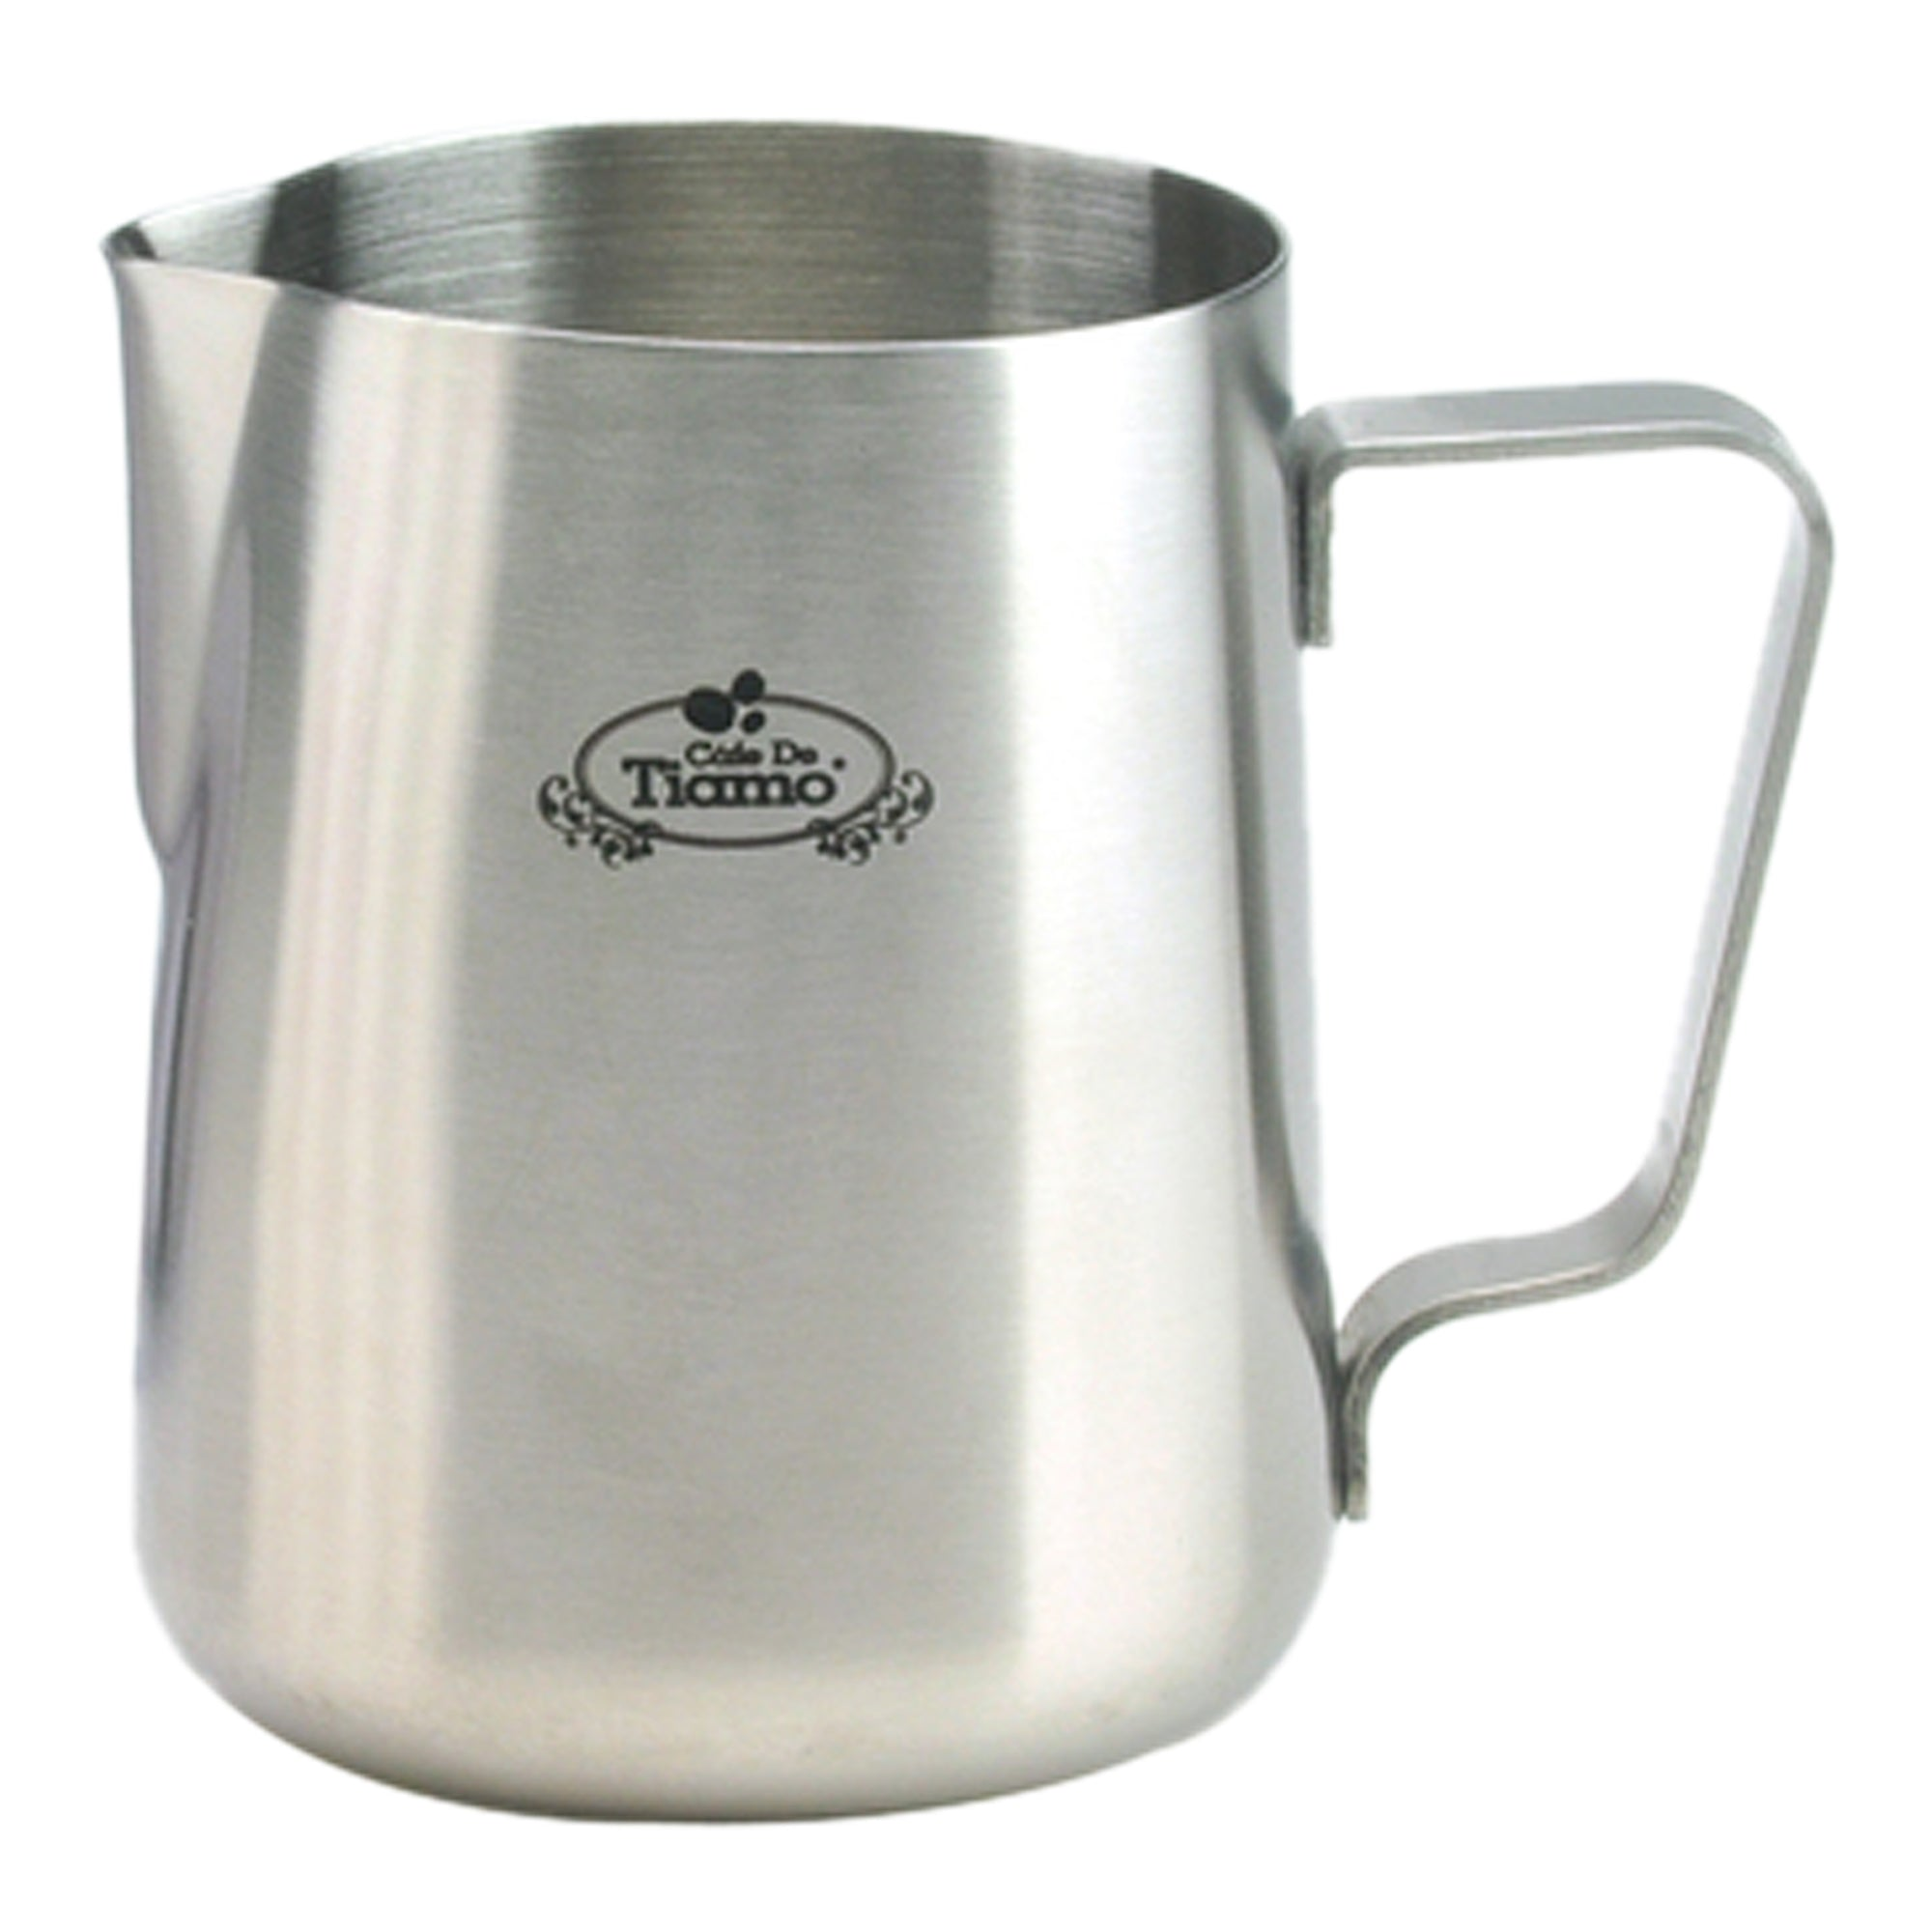 Tiamo Pitcher 600ml sand polished - Espresso Gear